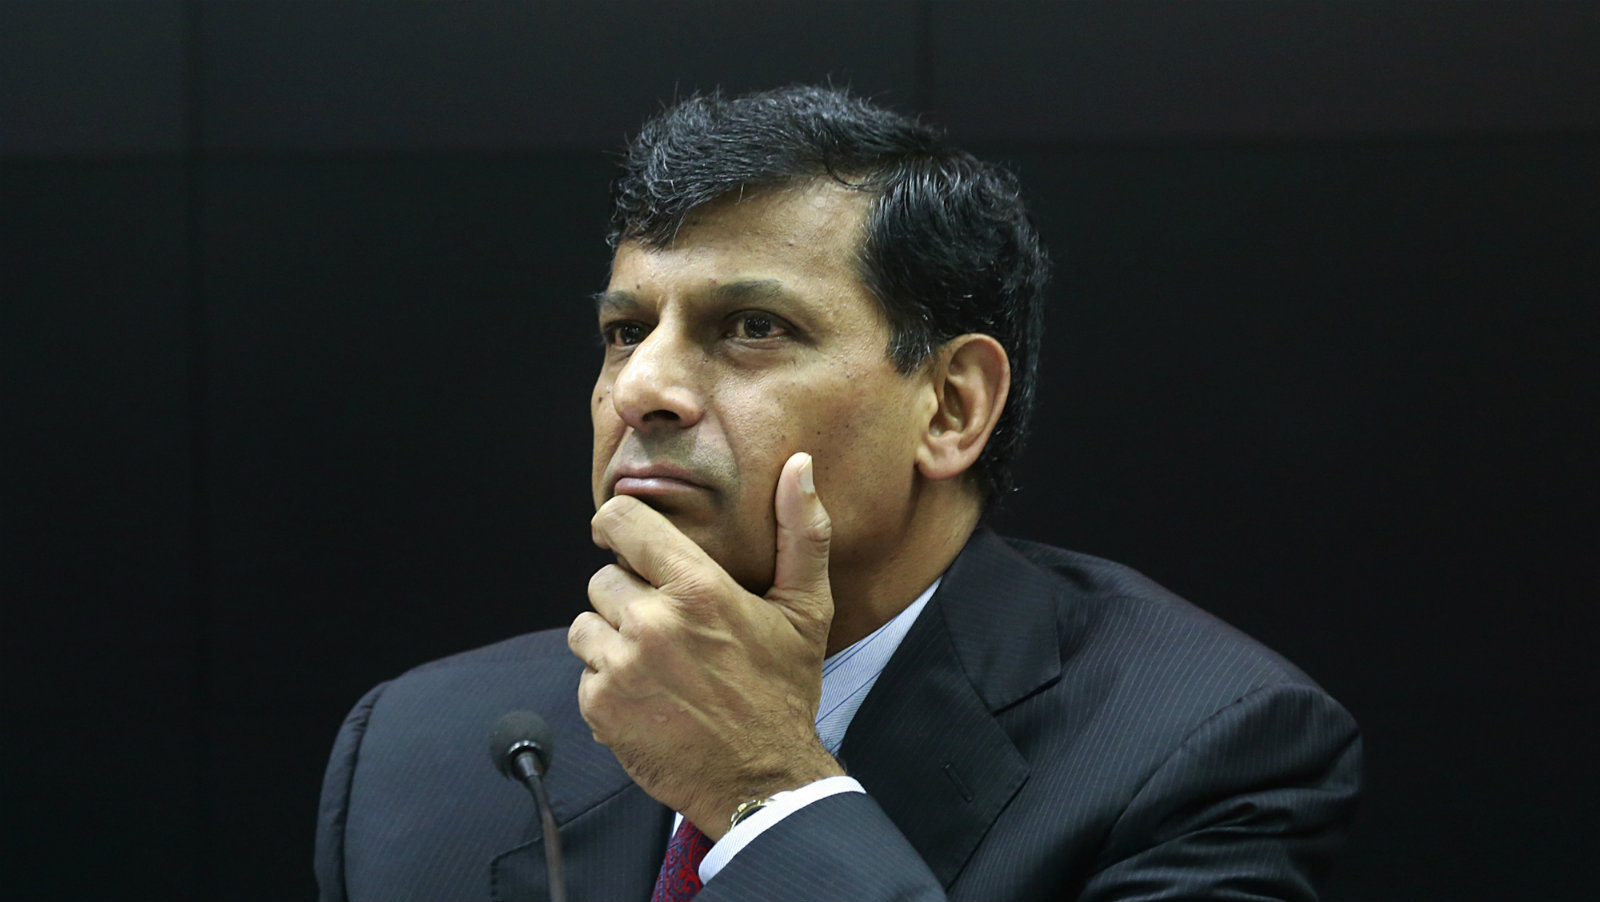 Governor of Reserve Bank of India (RBI), Raghuram Rajan, listens to a question during a press conference to declare the bi-monthly monetary policy statement in Mumbai, India, Tuesday, Aug. 9, 2016. RBI made no changes in the key interest rates.